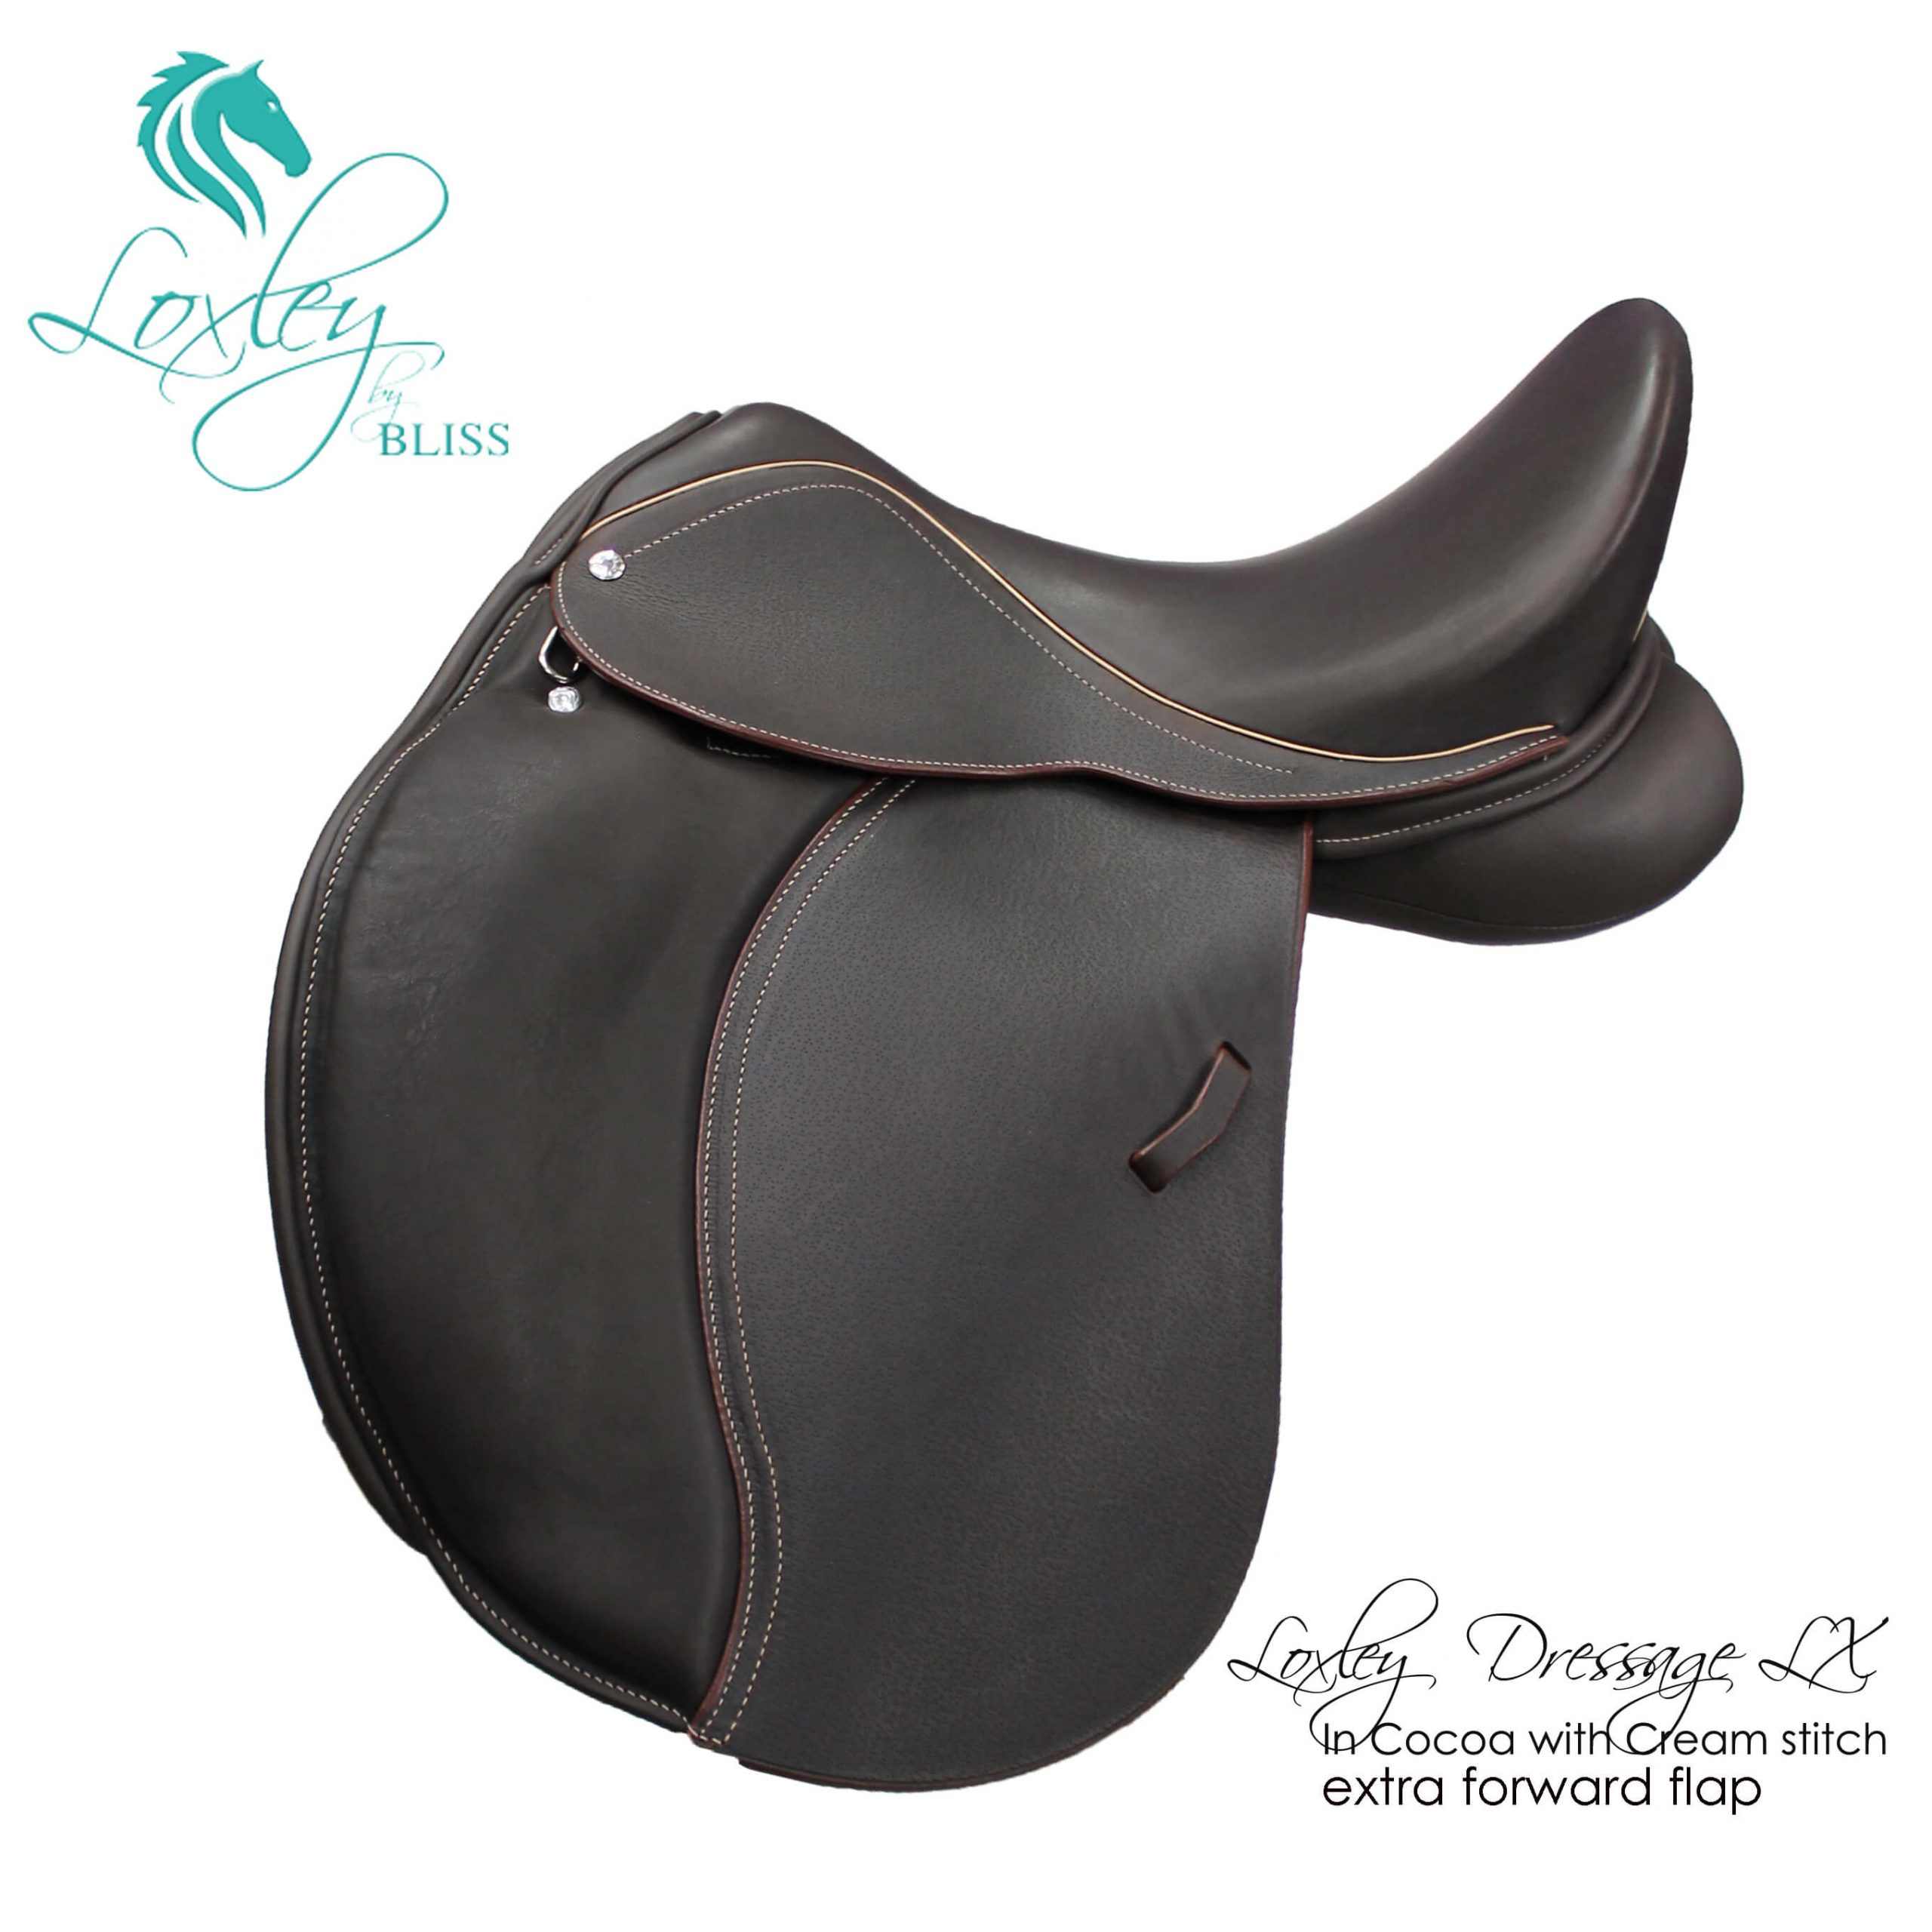 Loxley LX Dressage Saddle